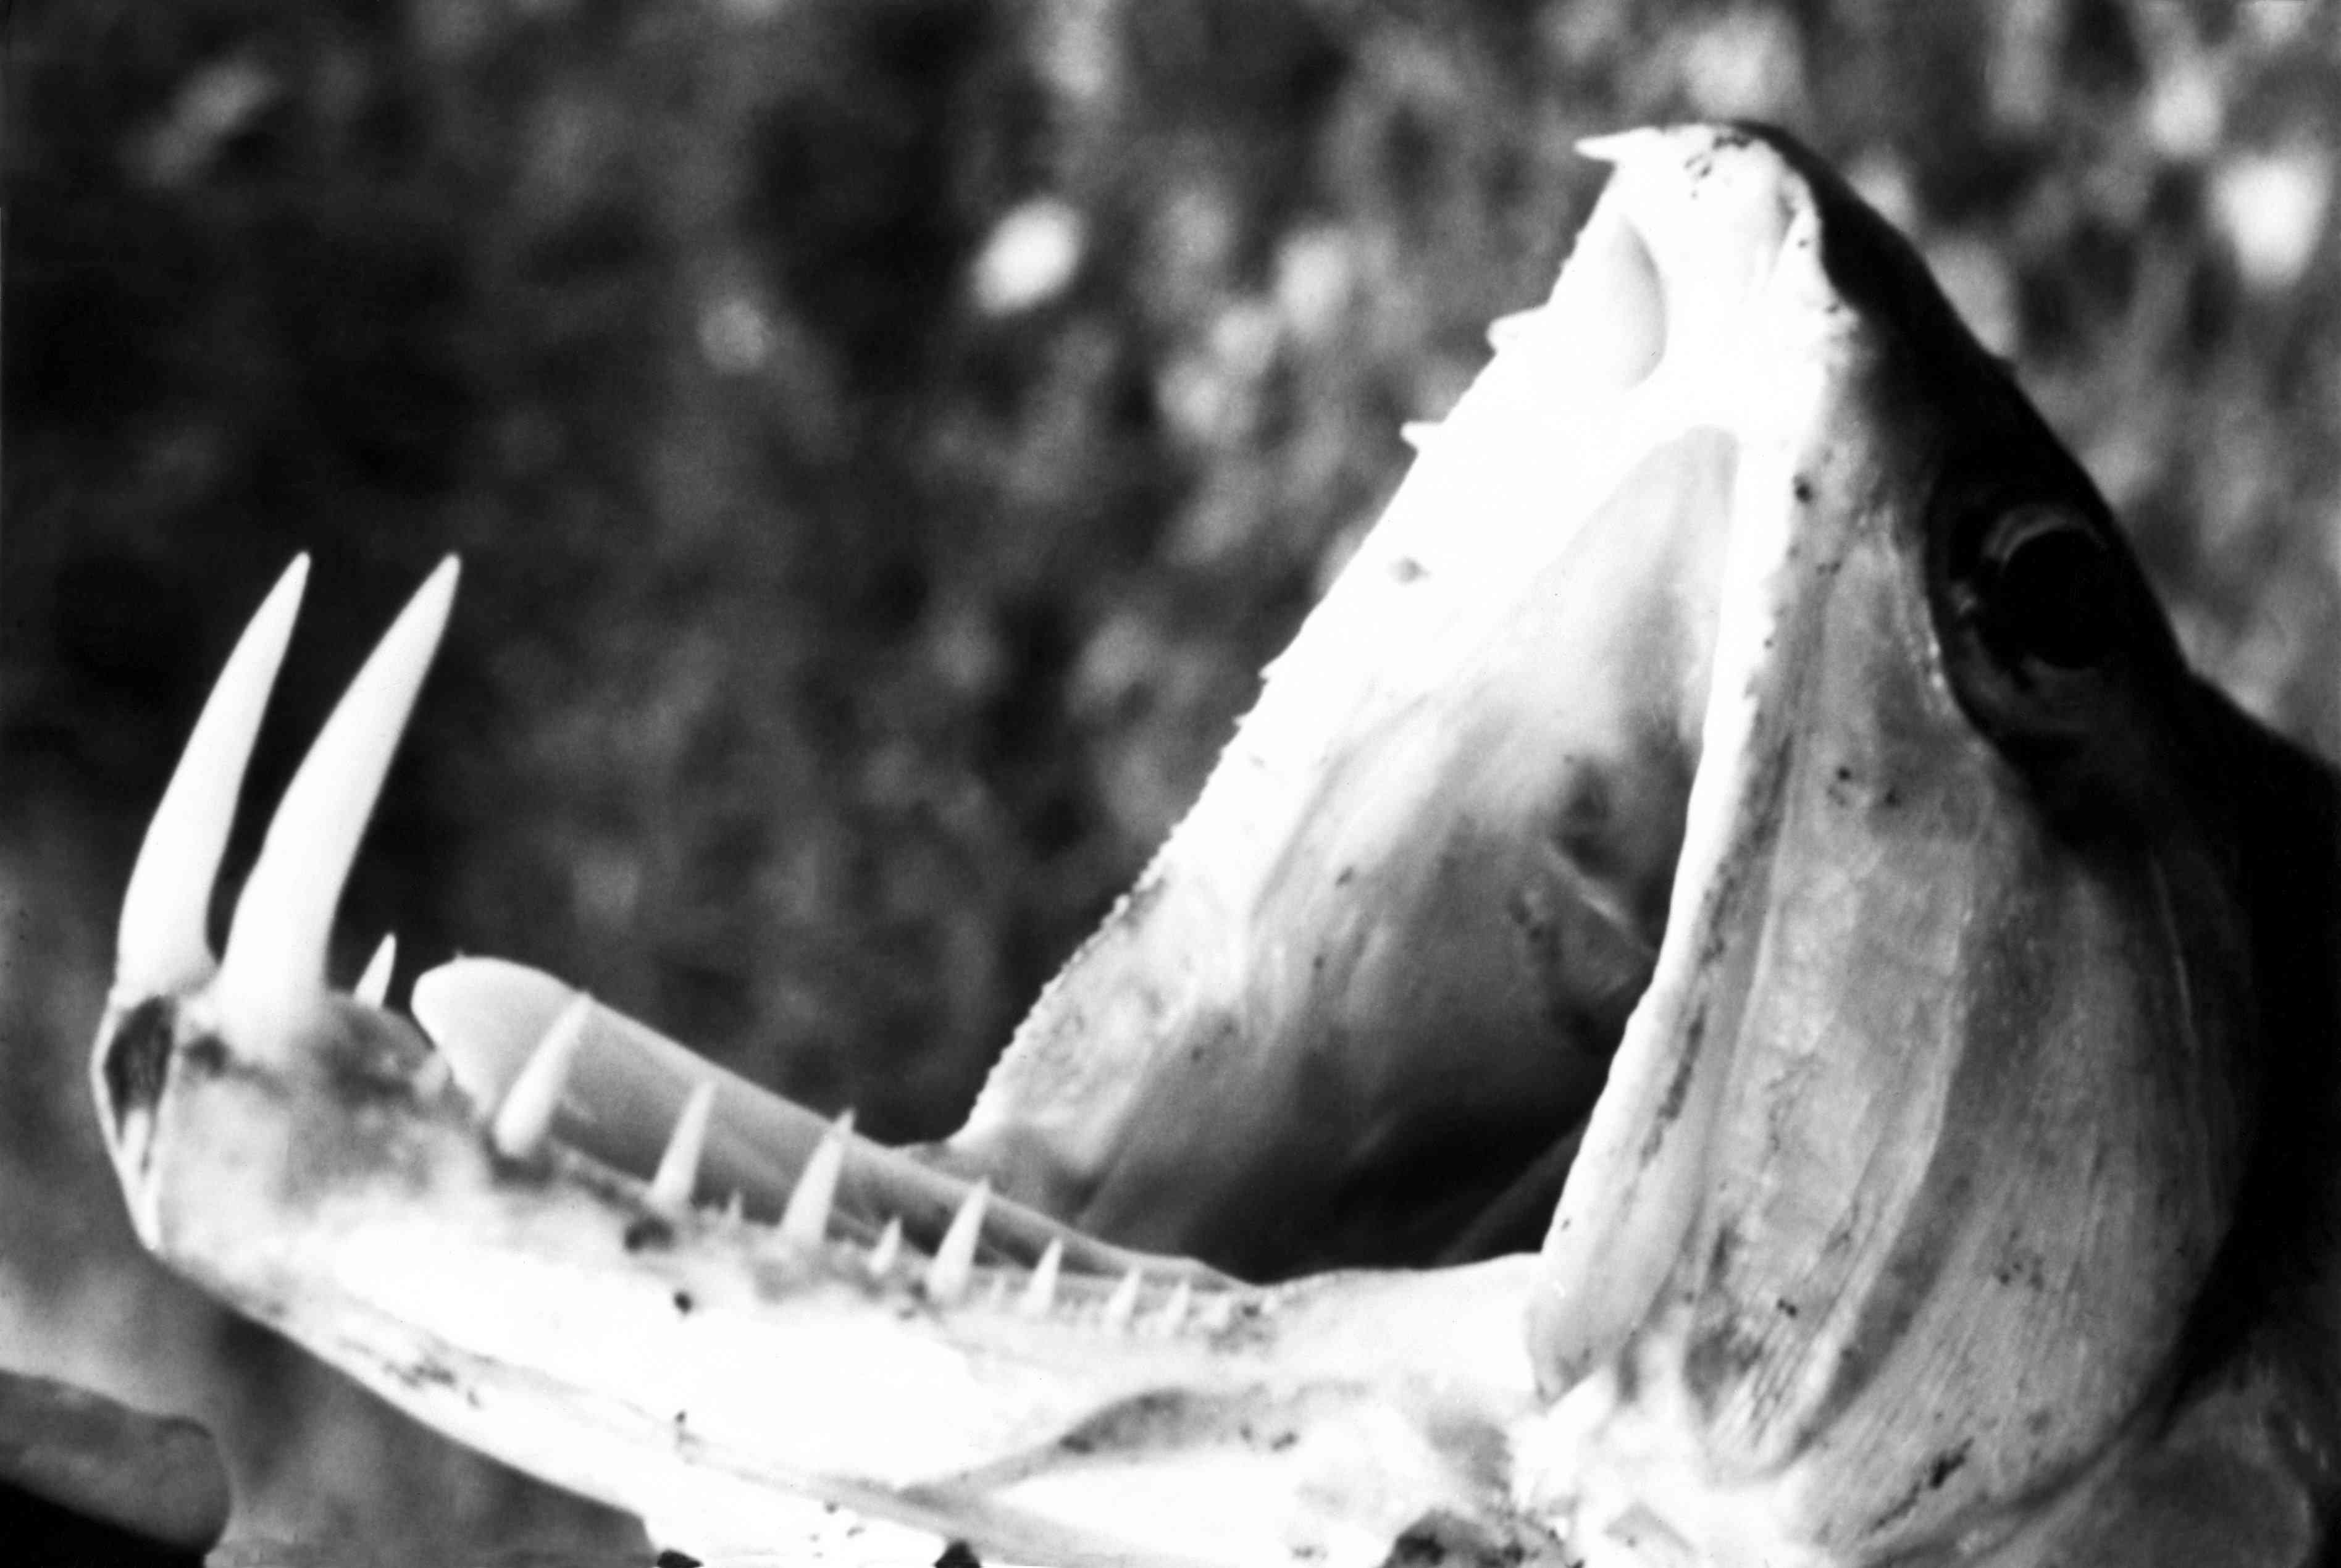 black and white vampire fish with mouth wide open and two long teeth displayed